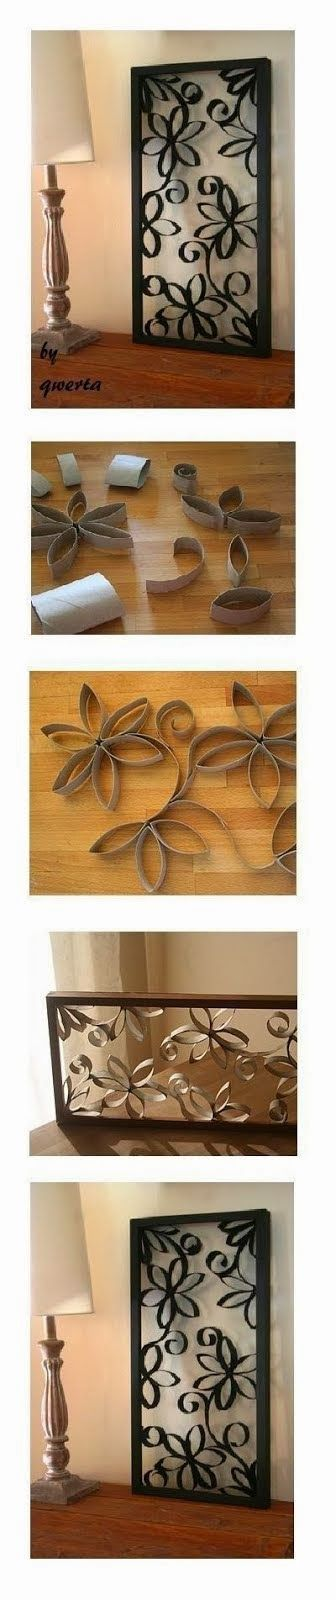 DIY - Toilet Paper Roll Wall Decoration